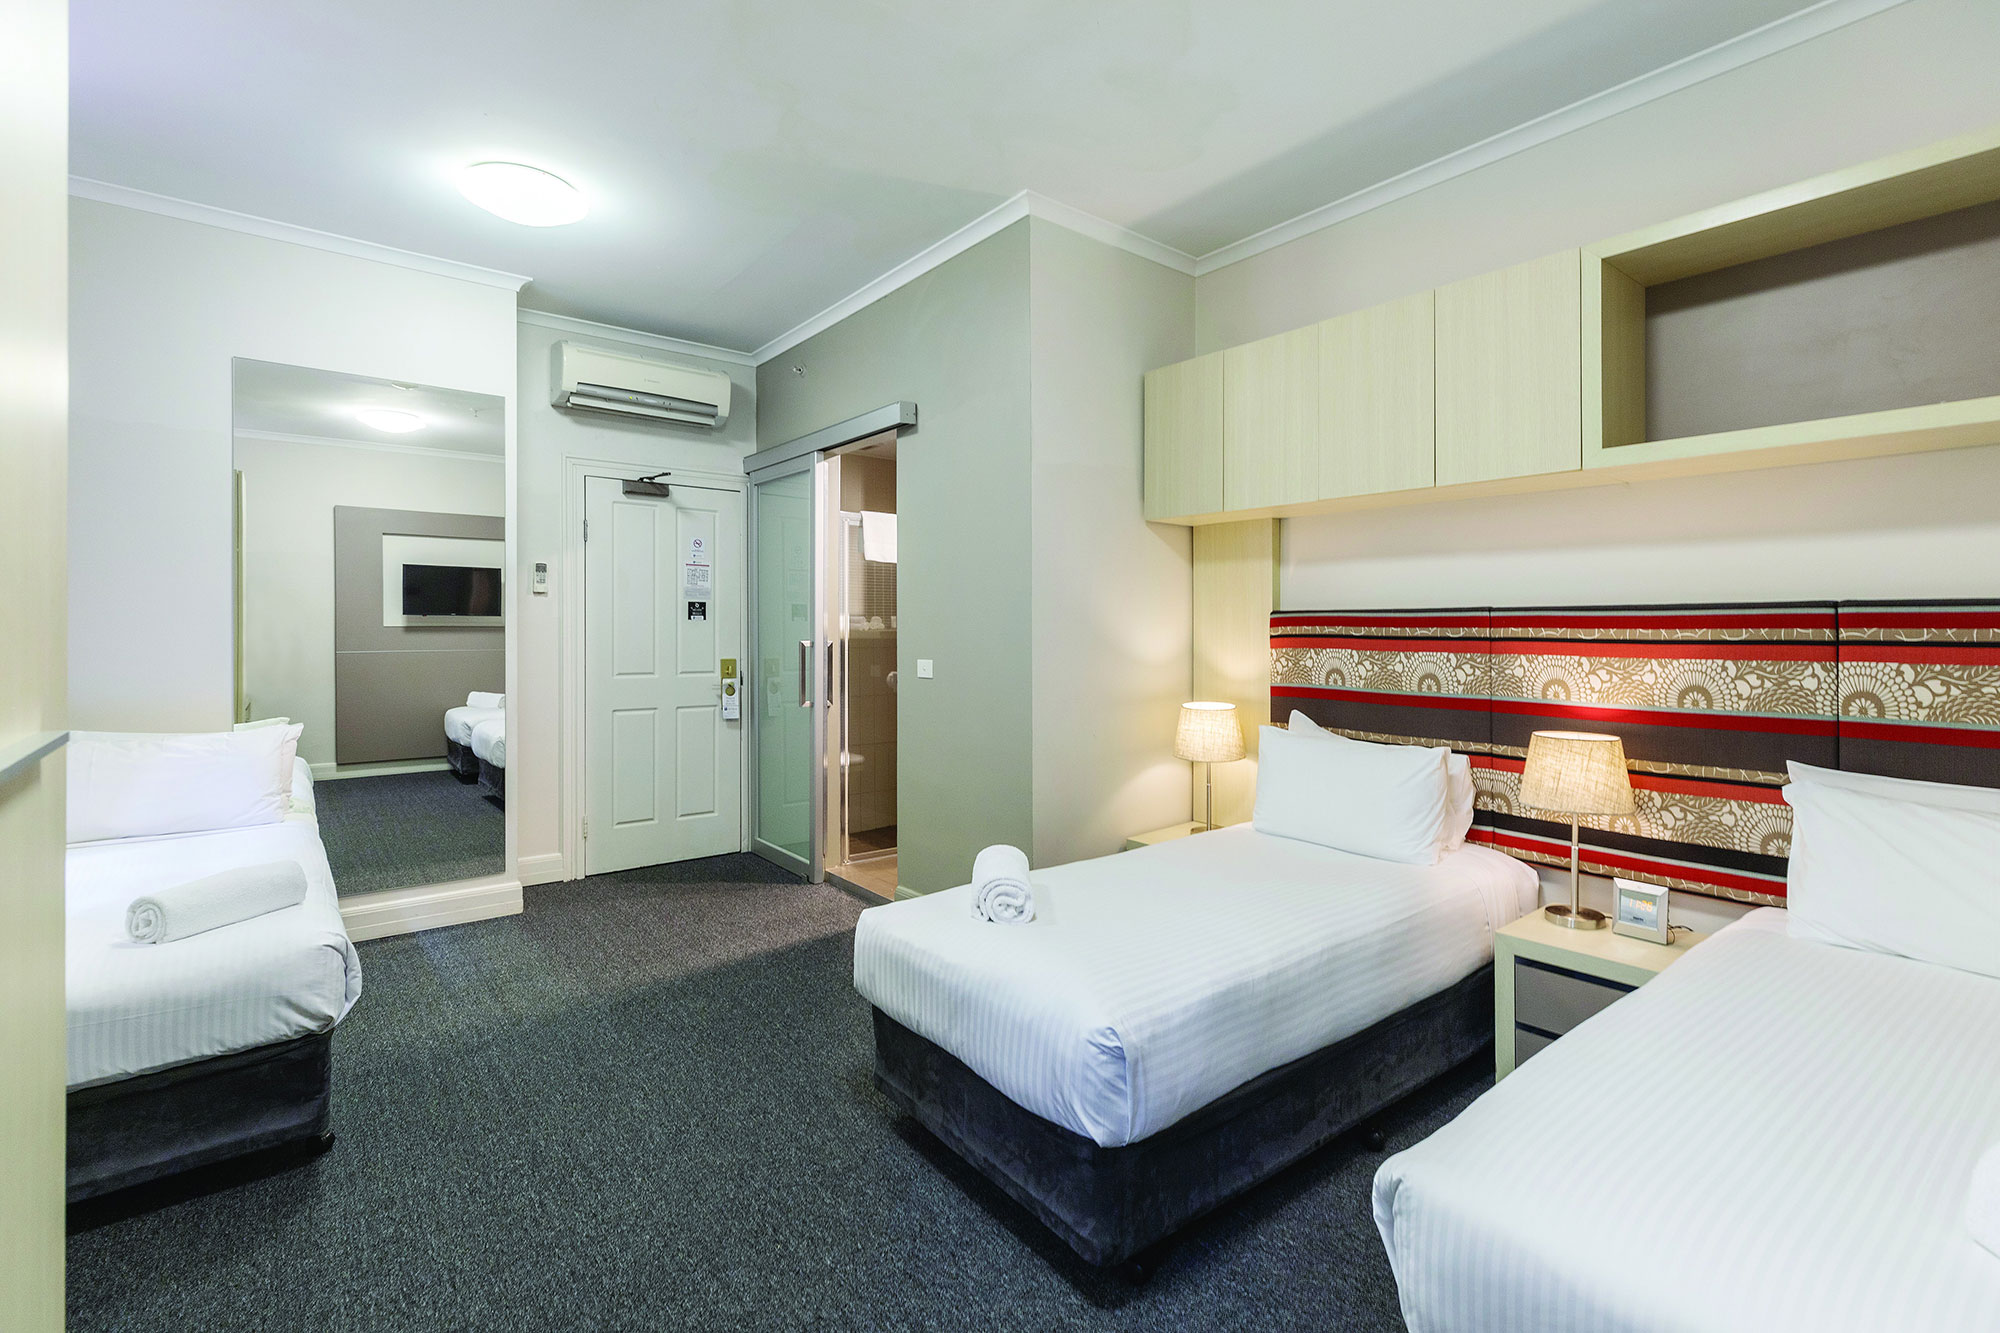 Miraculous Melbourne Short Stay Apartments Hotel Rooms 3 Beds Download Free Architecture Designs Estepponolmadebymaigaardcom